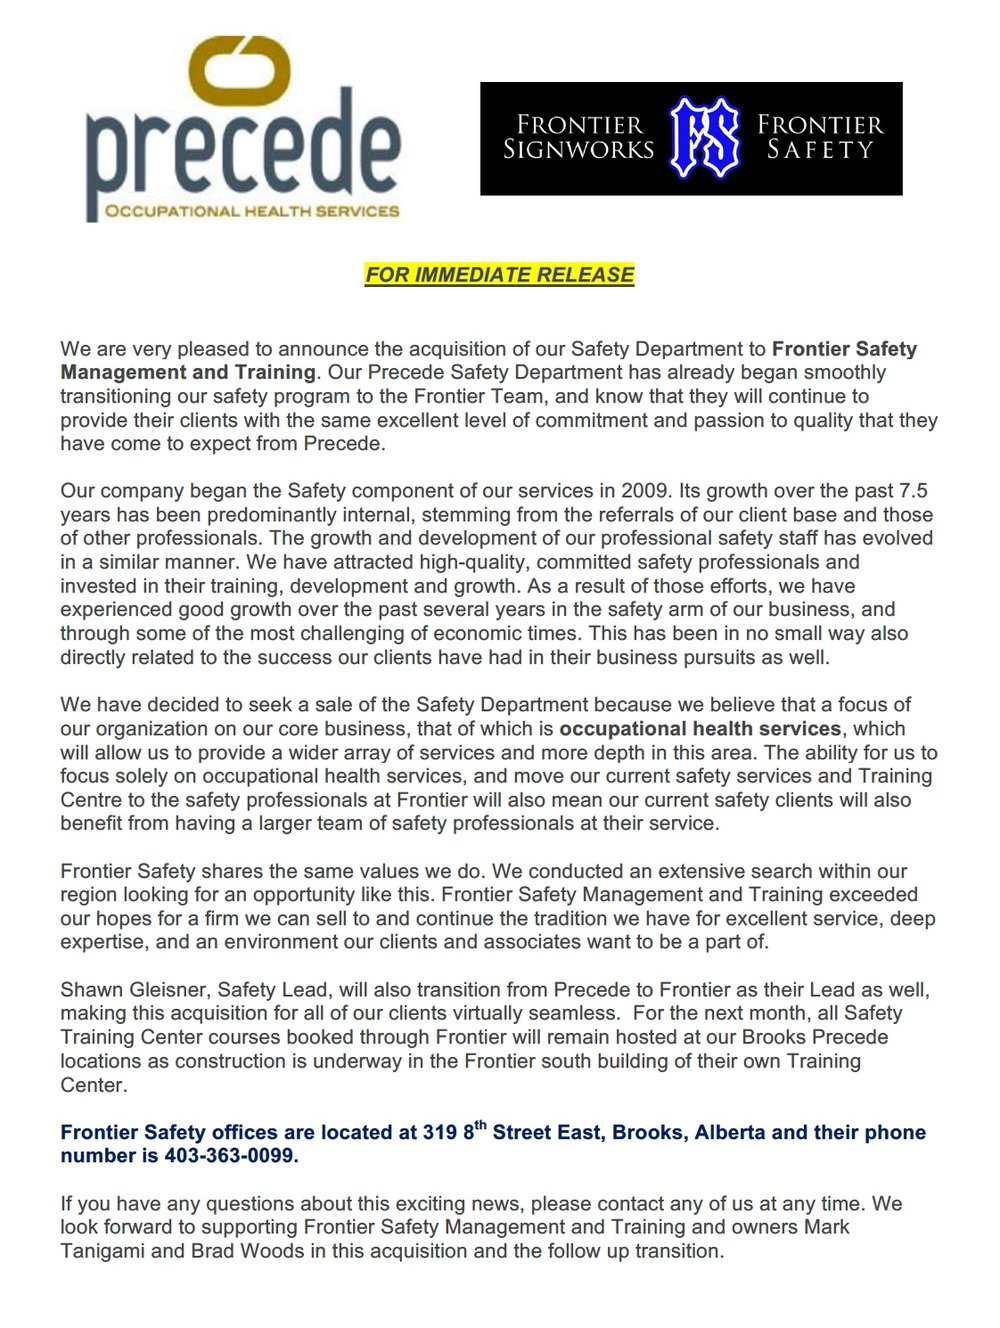 Precede Frontier Announcement.jpeg